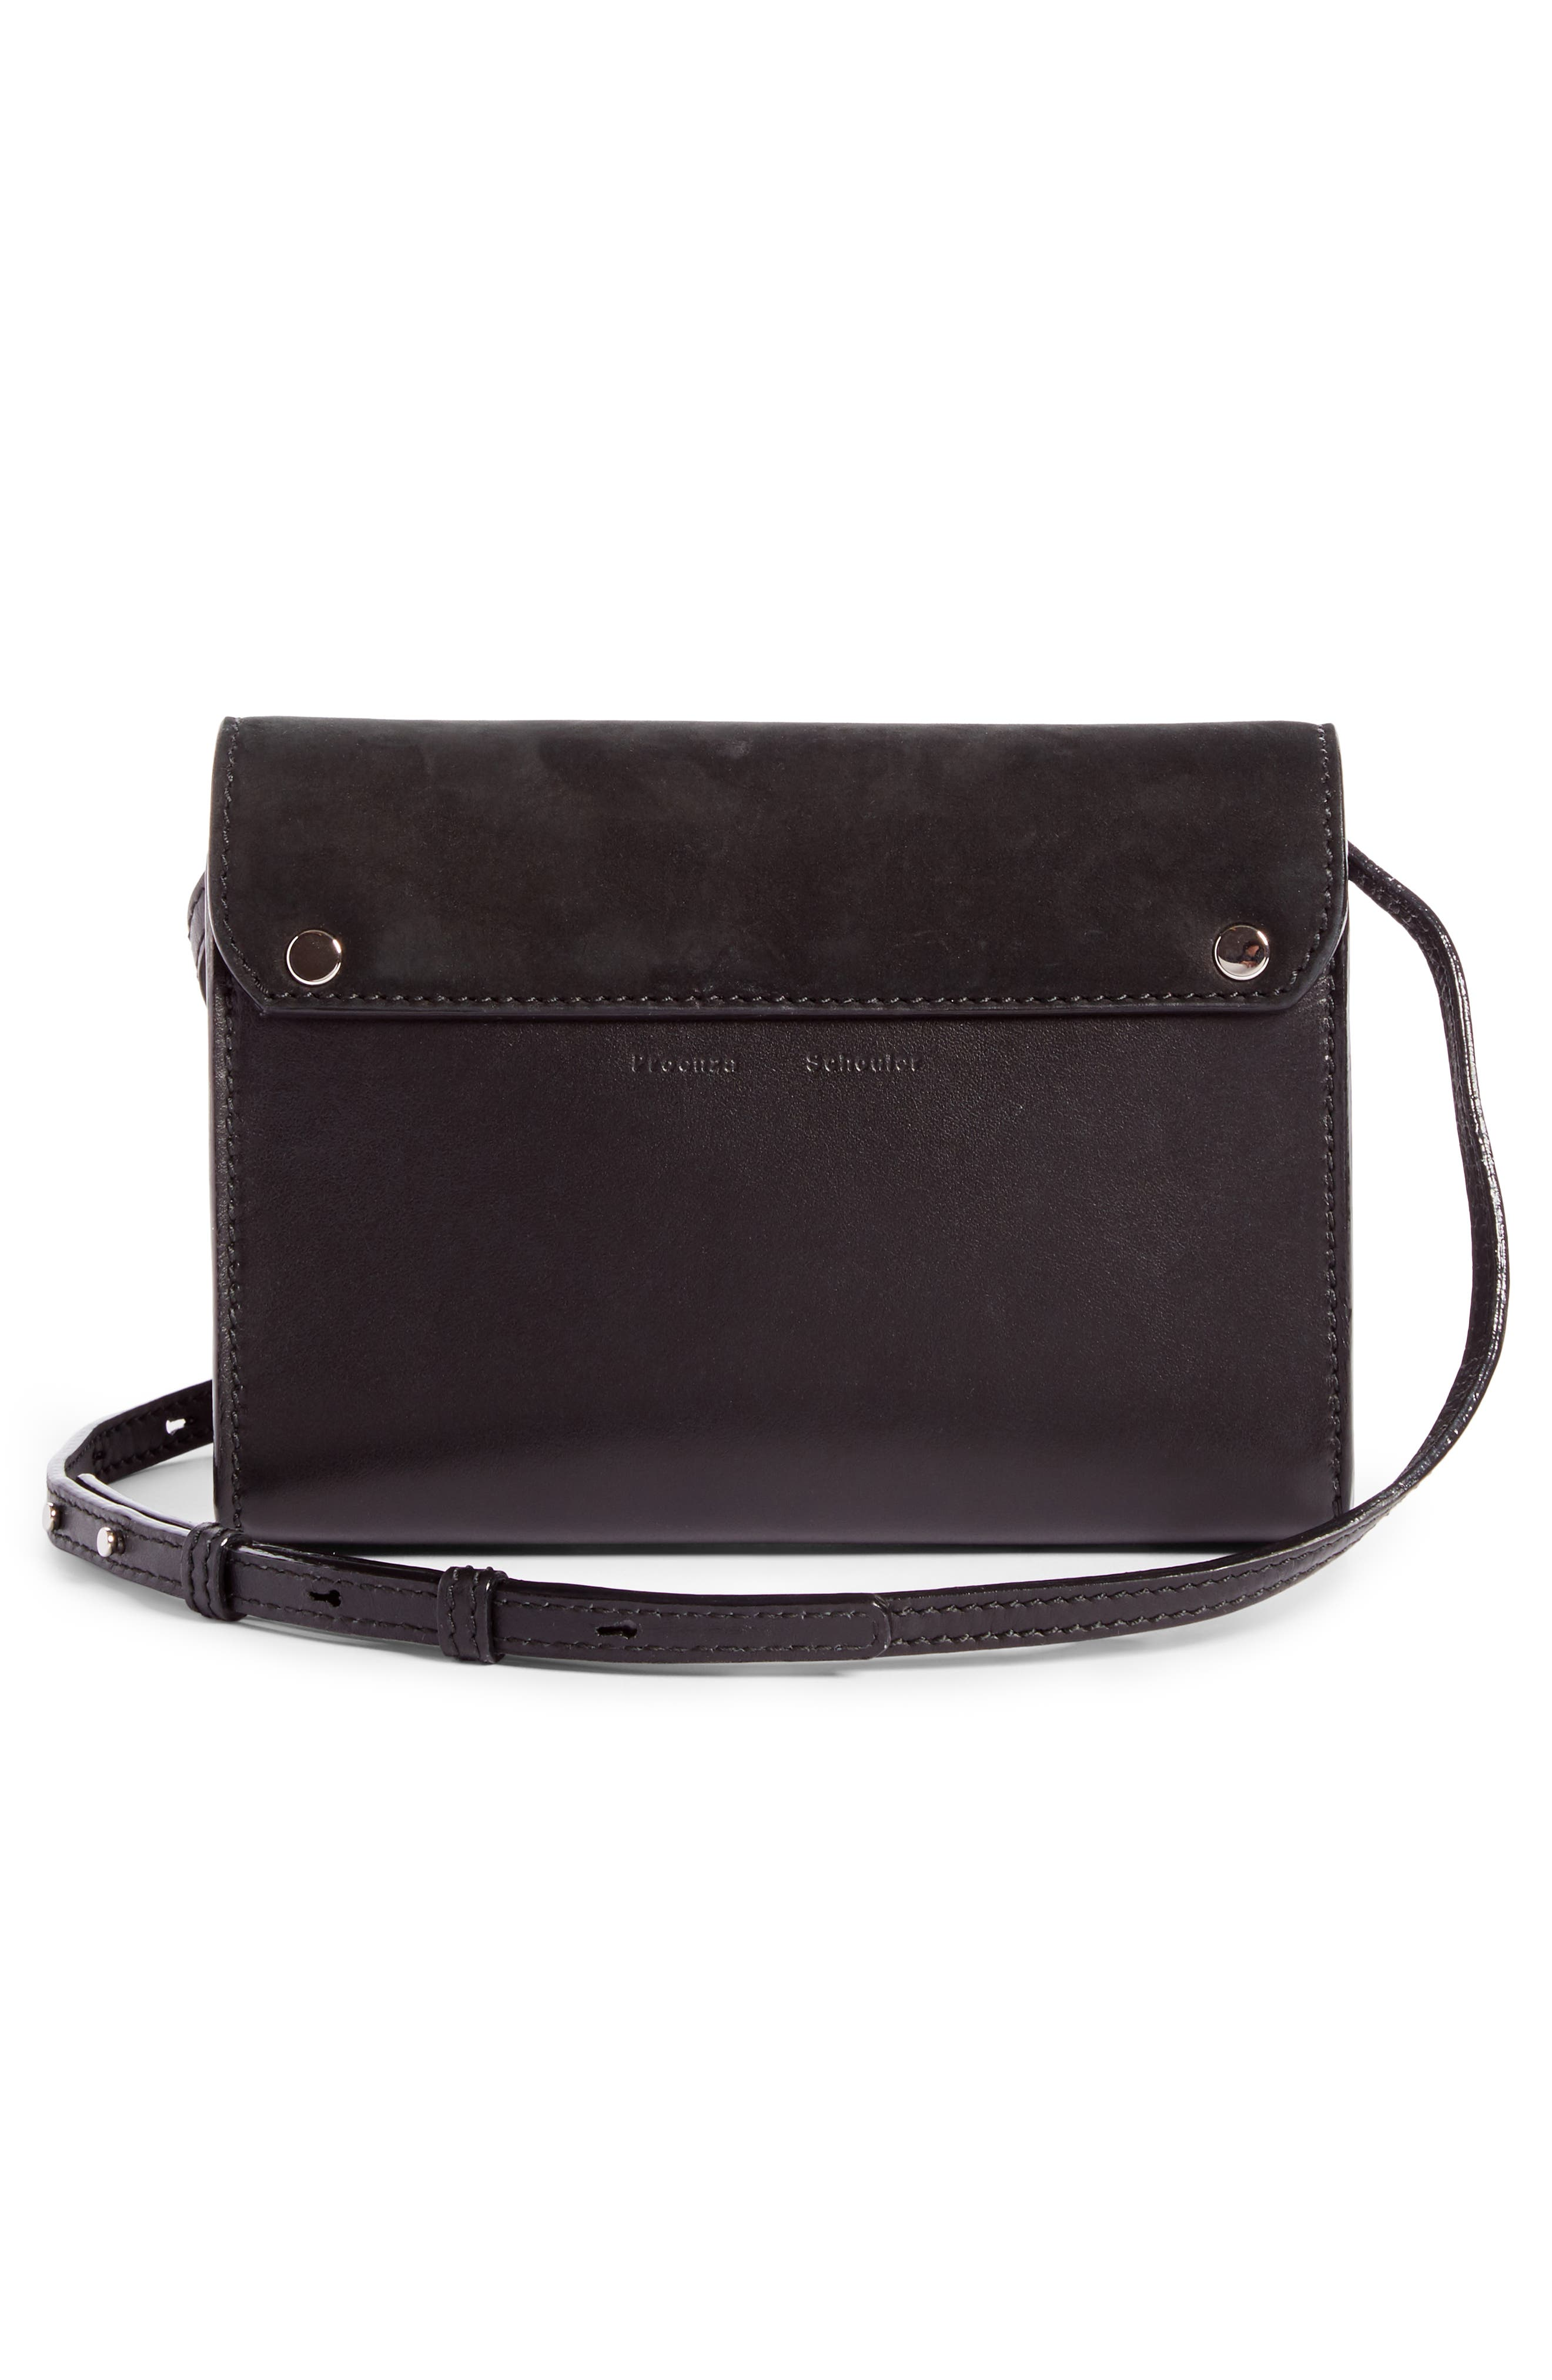 PS11 Calfskin Leather Crossbody Wallet,                             Alternate thumbnail 3, color,                             001